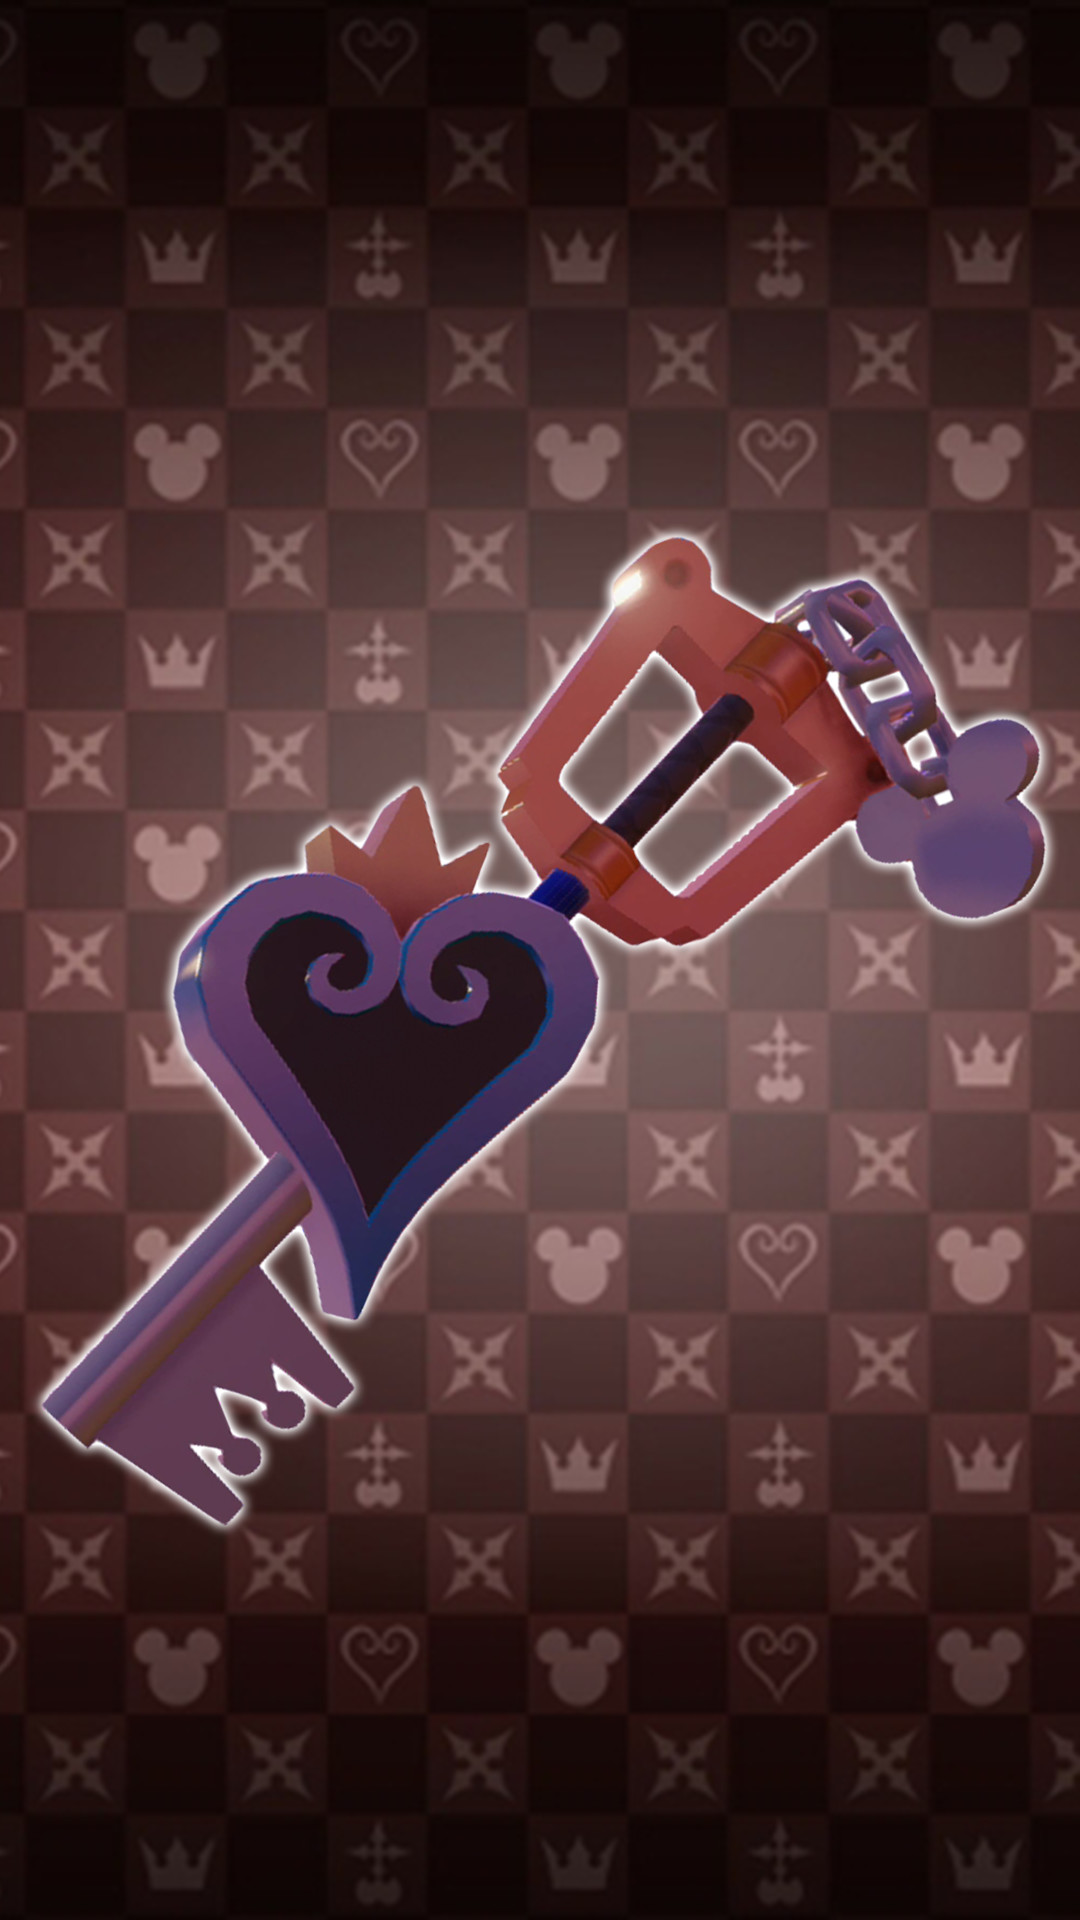 1080x1920 Keyblade Wallpaper